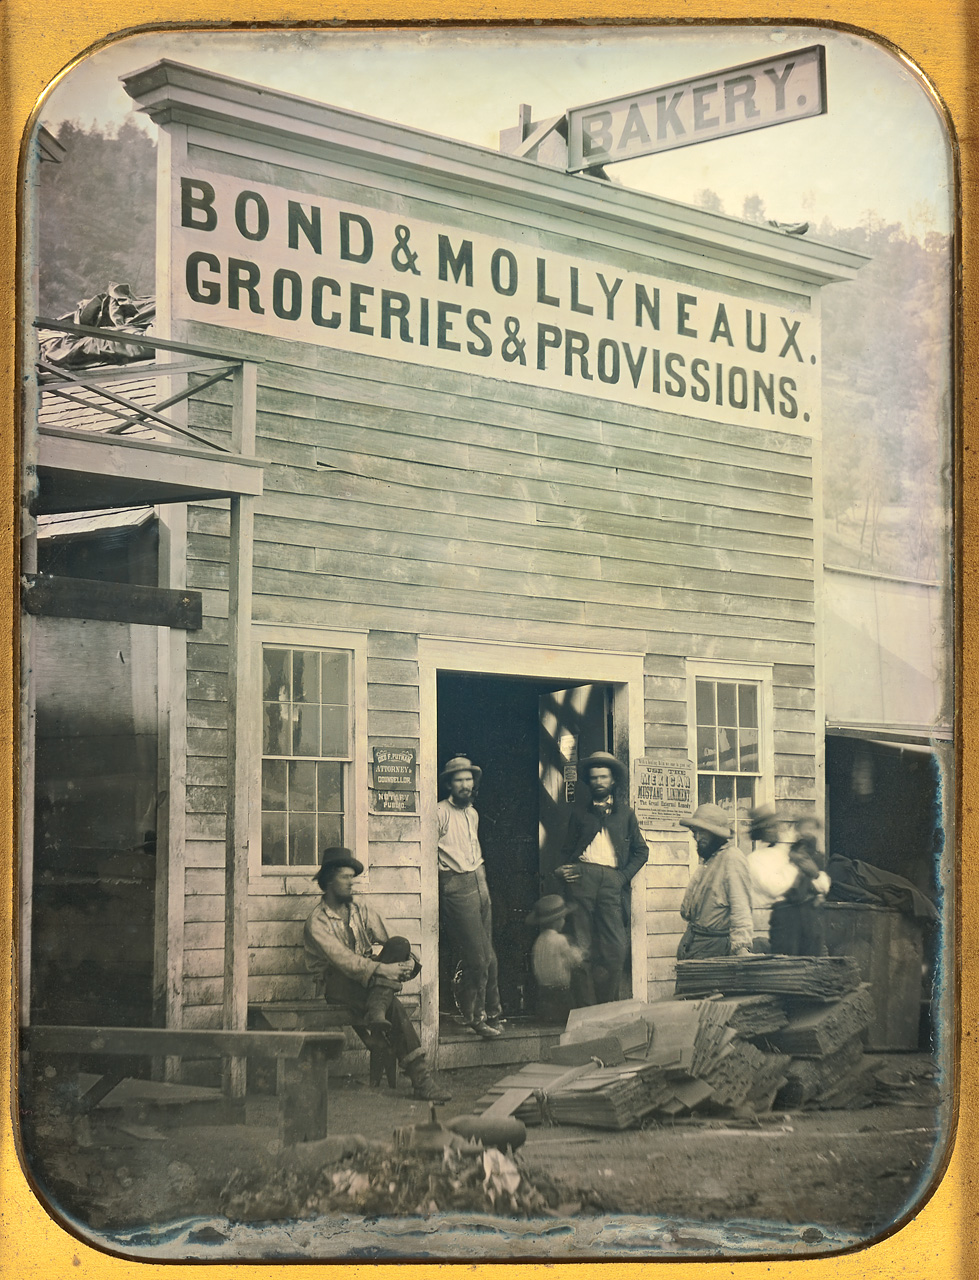 Unknown maker, American.  Bond & Mollyneaux Groceries and Provisions , ca. 1850. Daguerreotype, whole plate, image size: 8 ½ x 6 ½ inches. Gift of the Hall Family Foundation, 2008.6.3. © Nelson Gallery Foundation.